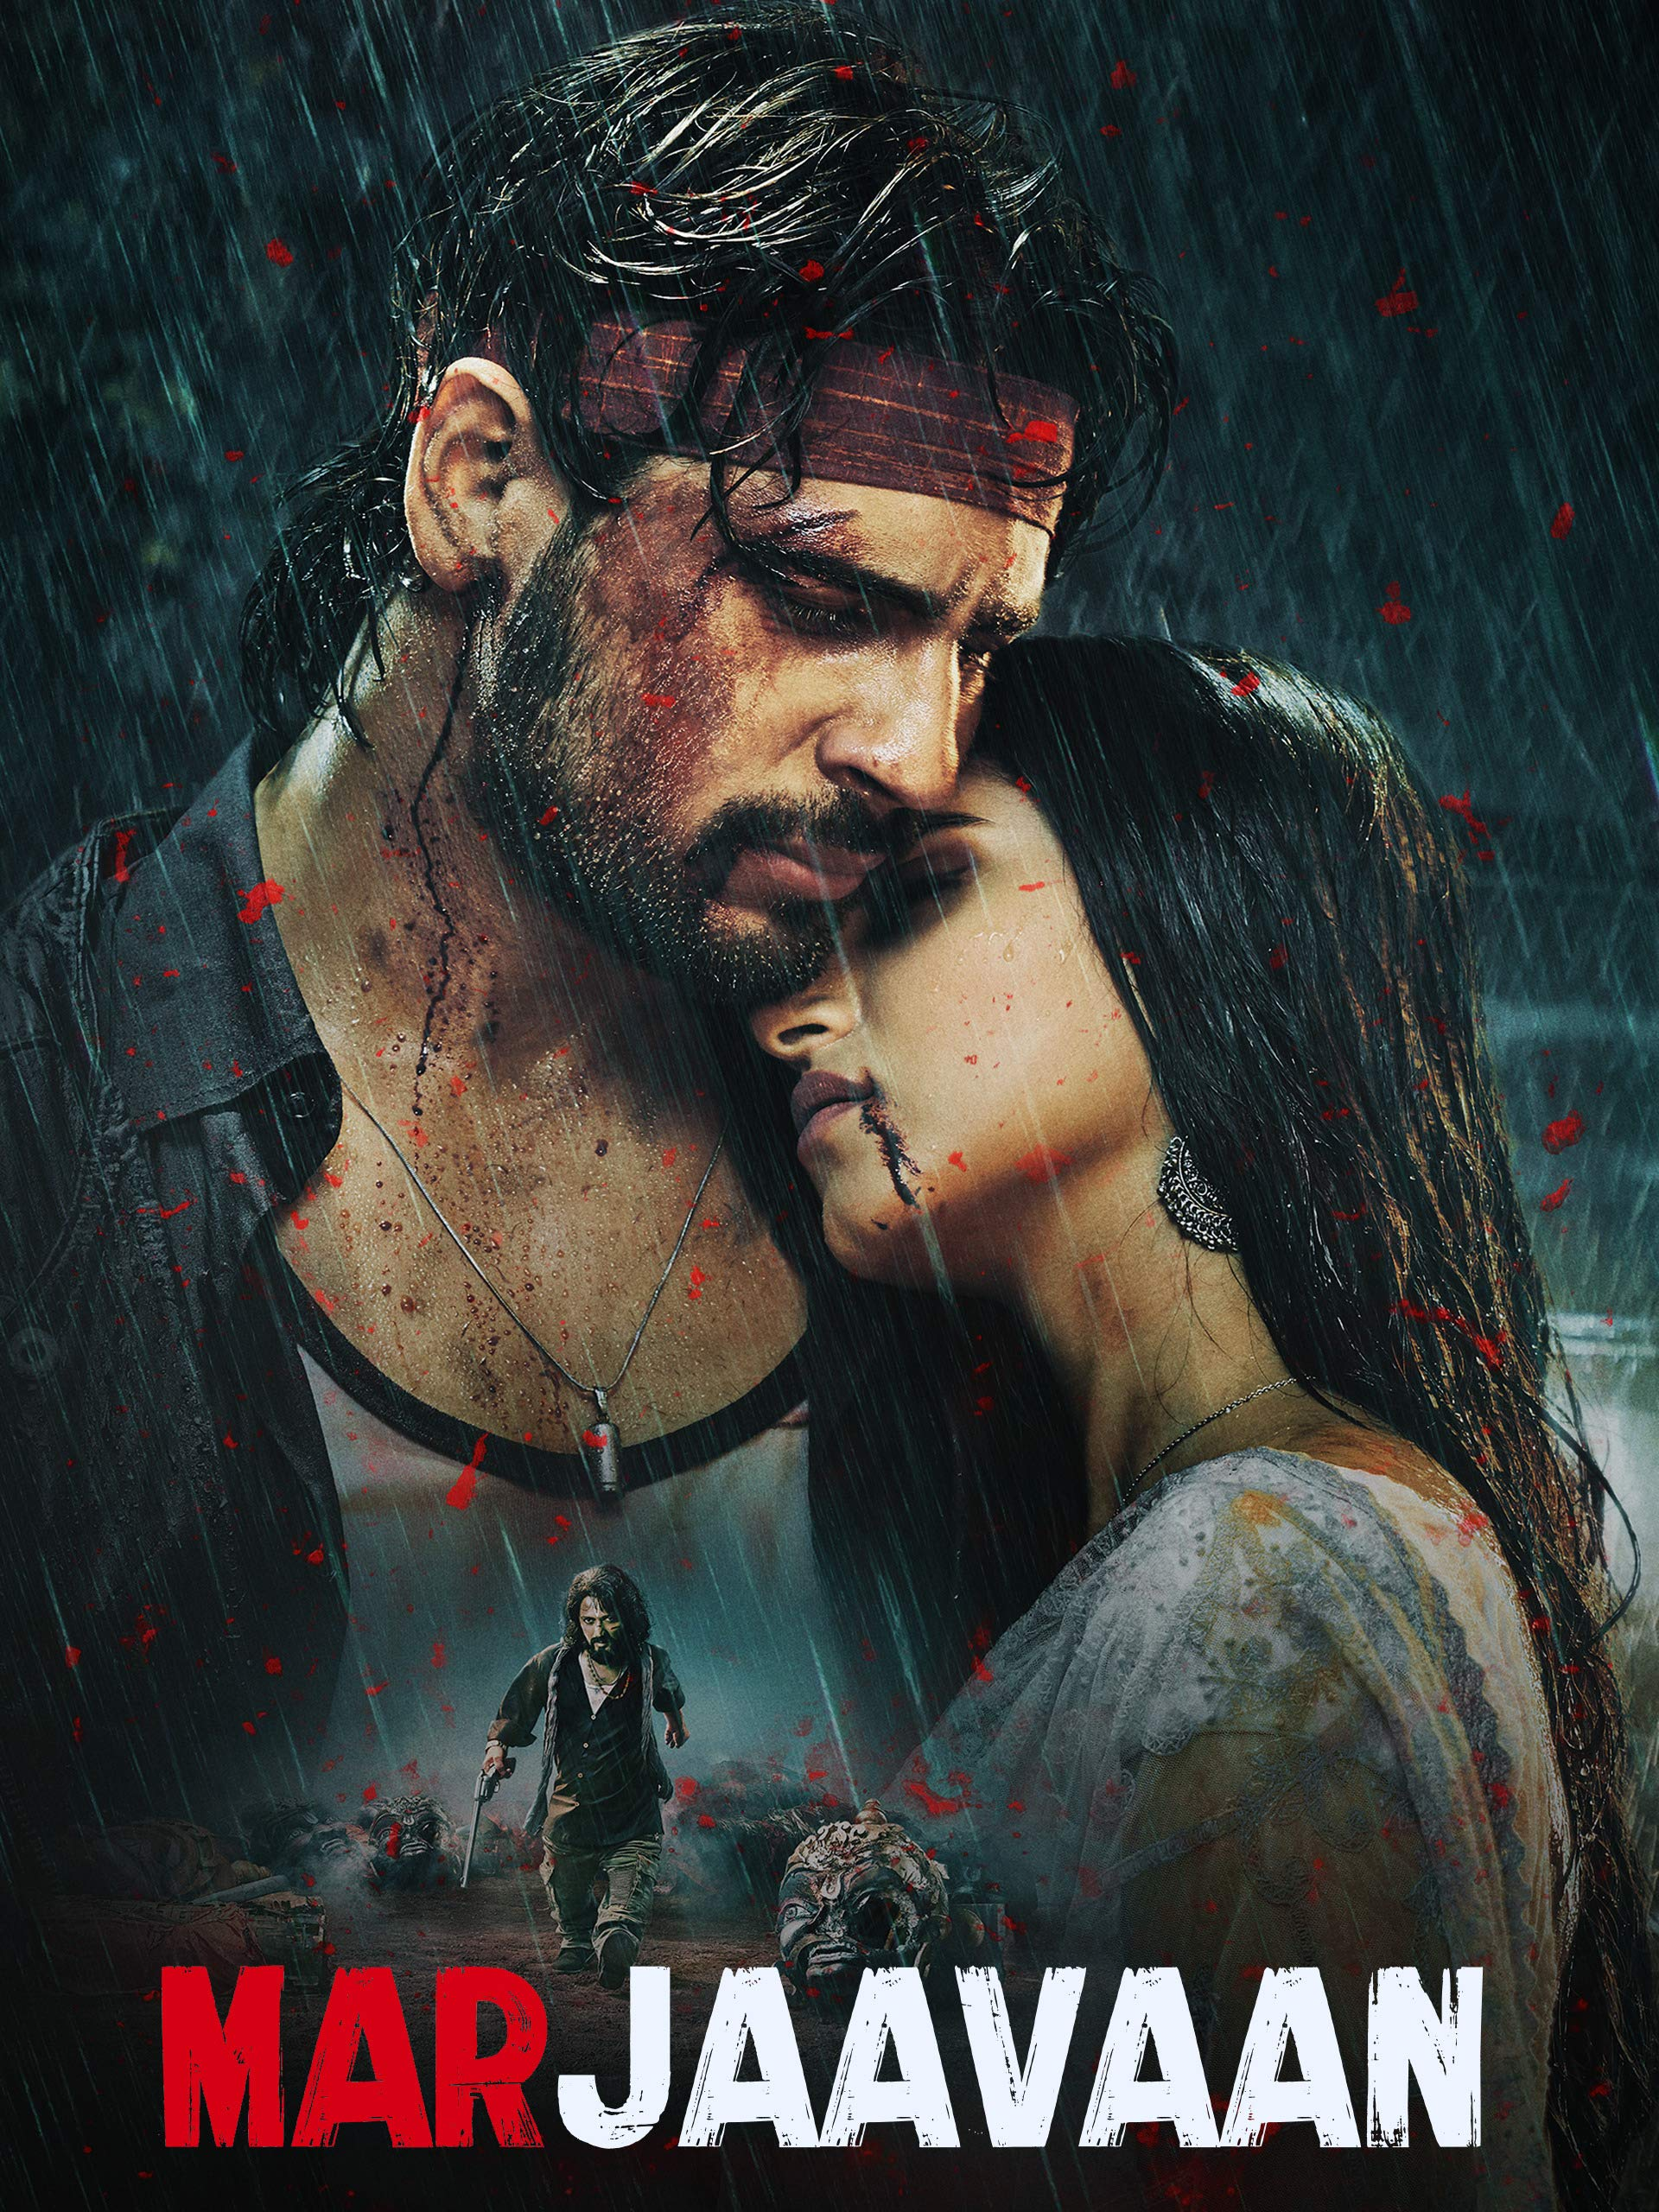 Watch Marjaavaan Prime Video